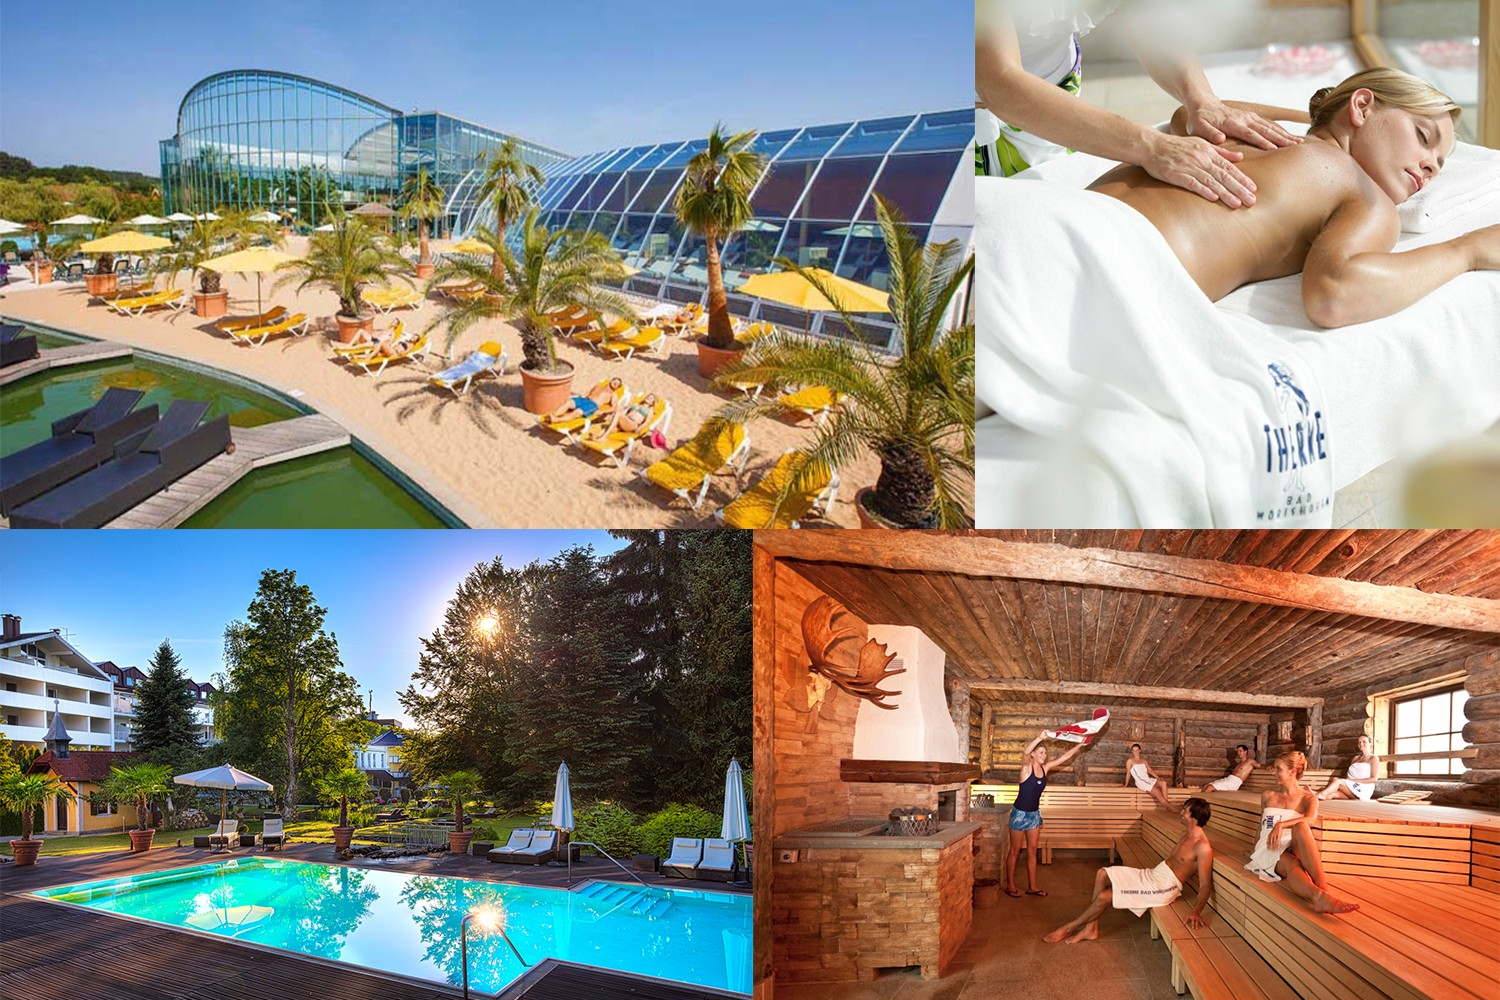 3 days in 4*S Park Hotel Residence in Bad Wörishofen & 2 tickets for the THERME Bad Wörishofen